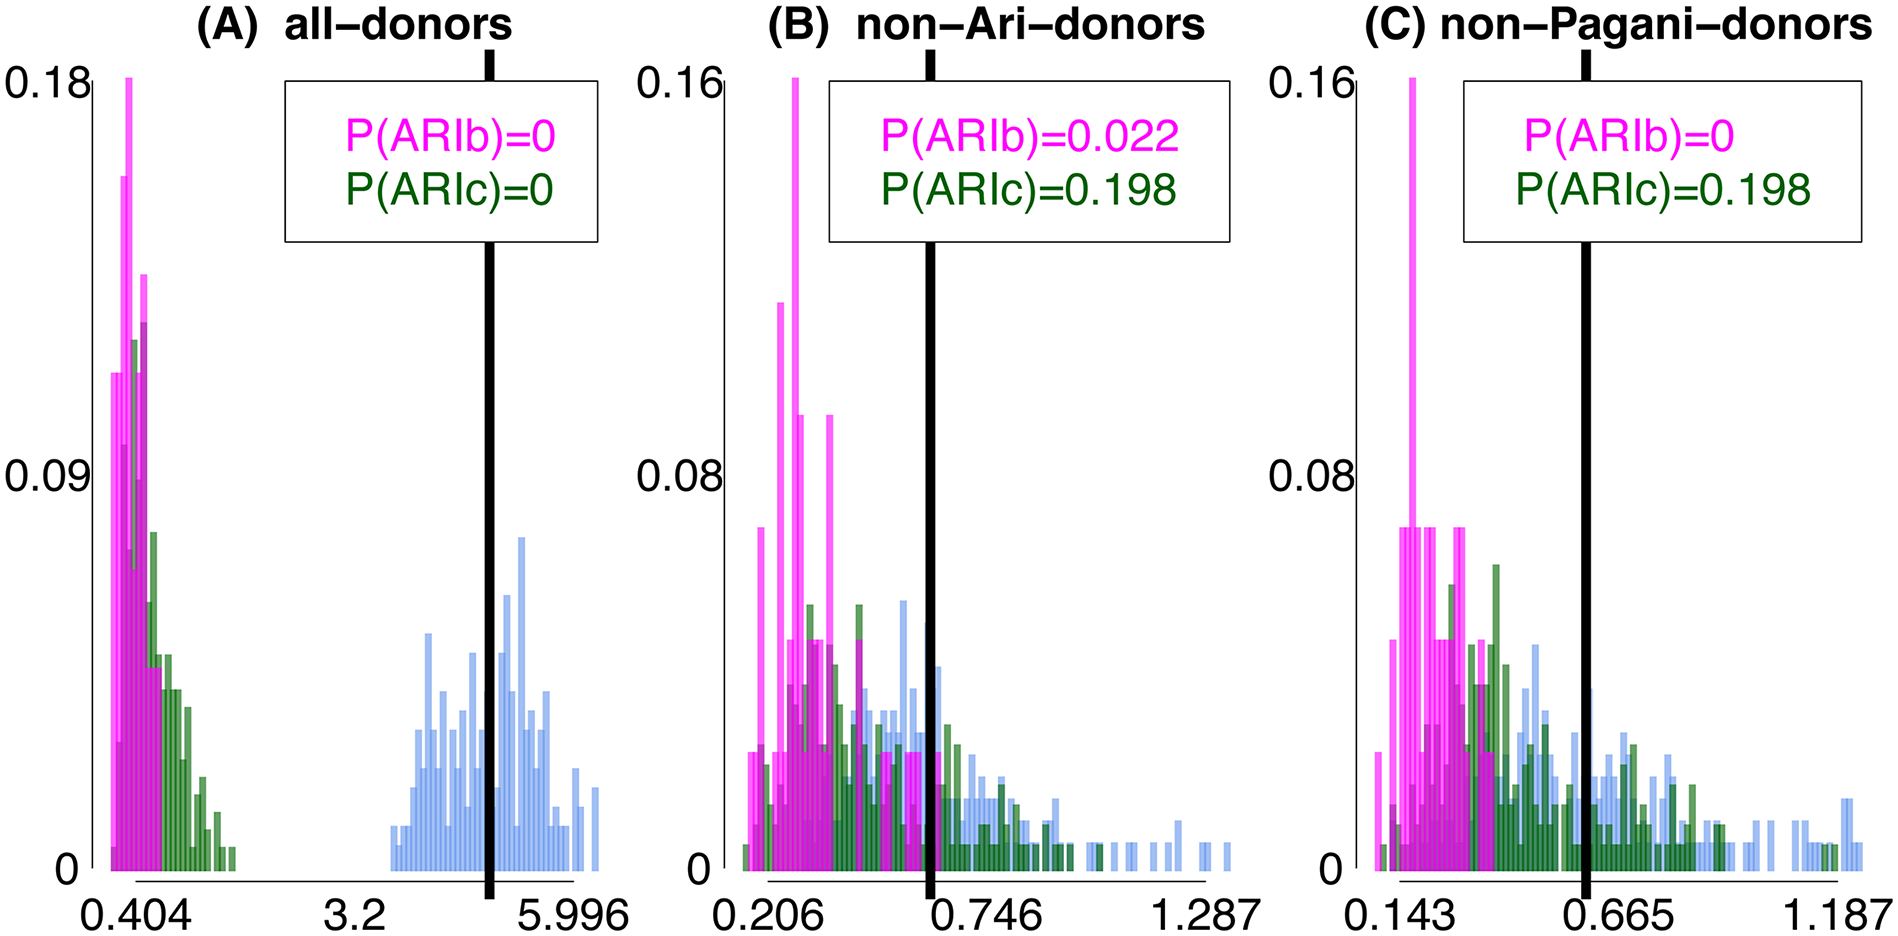 Differences in inferred ancestry under analyses (A)-(C) using <i>F</i><sub><i>XY</i></sub>.